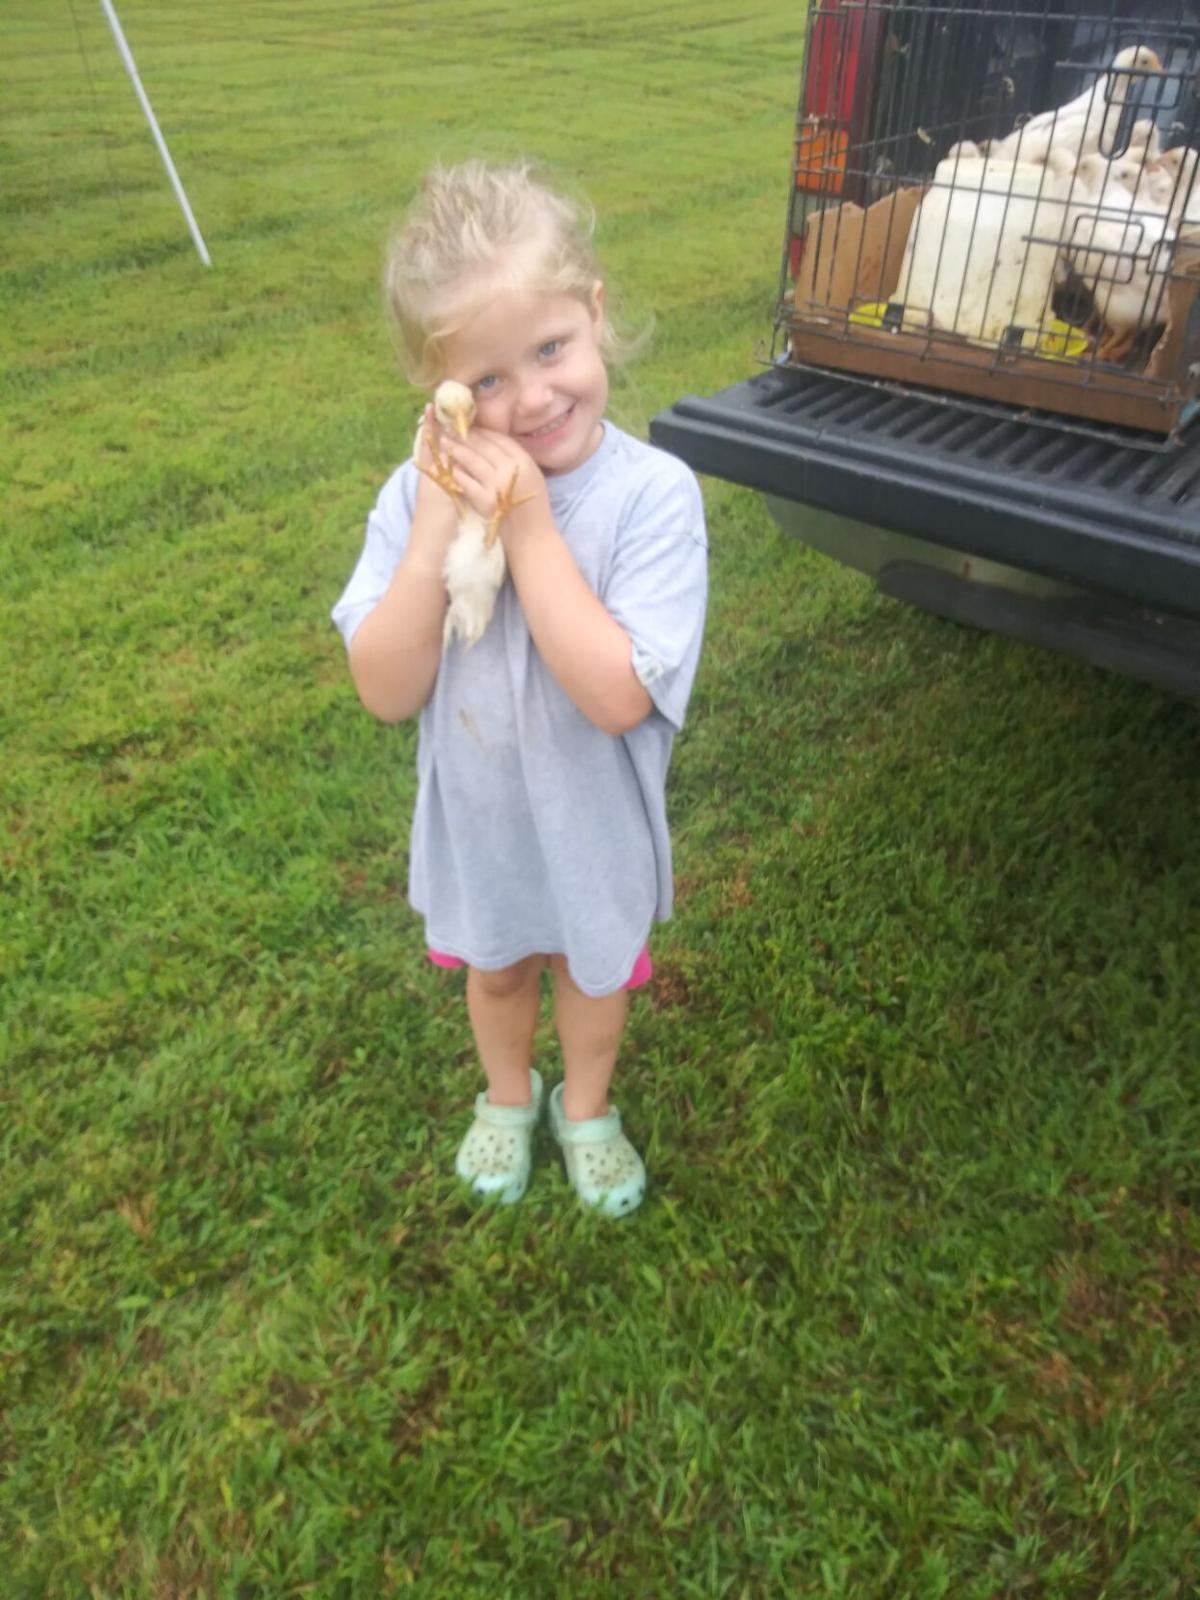 Eden Roman helps sell chickens